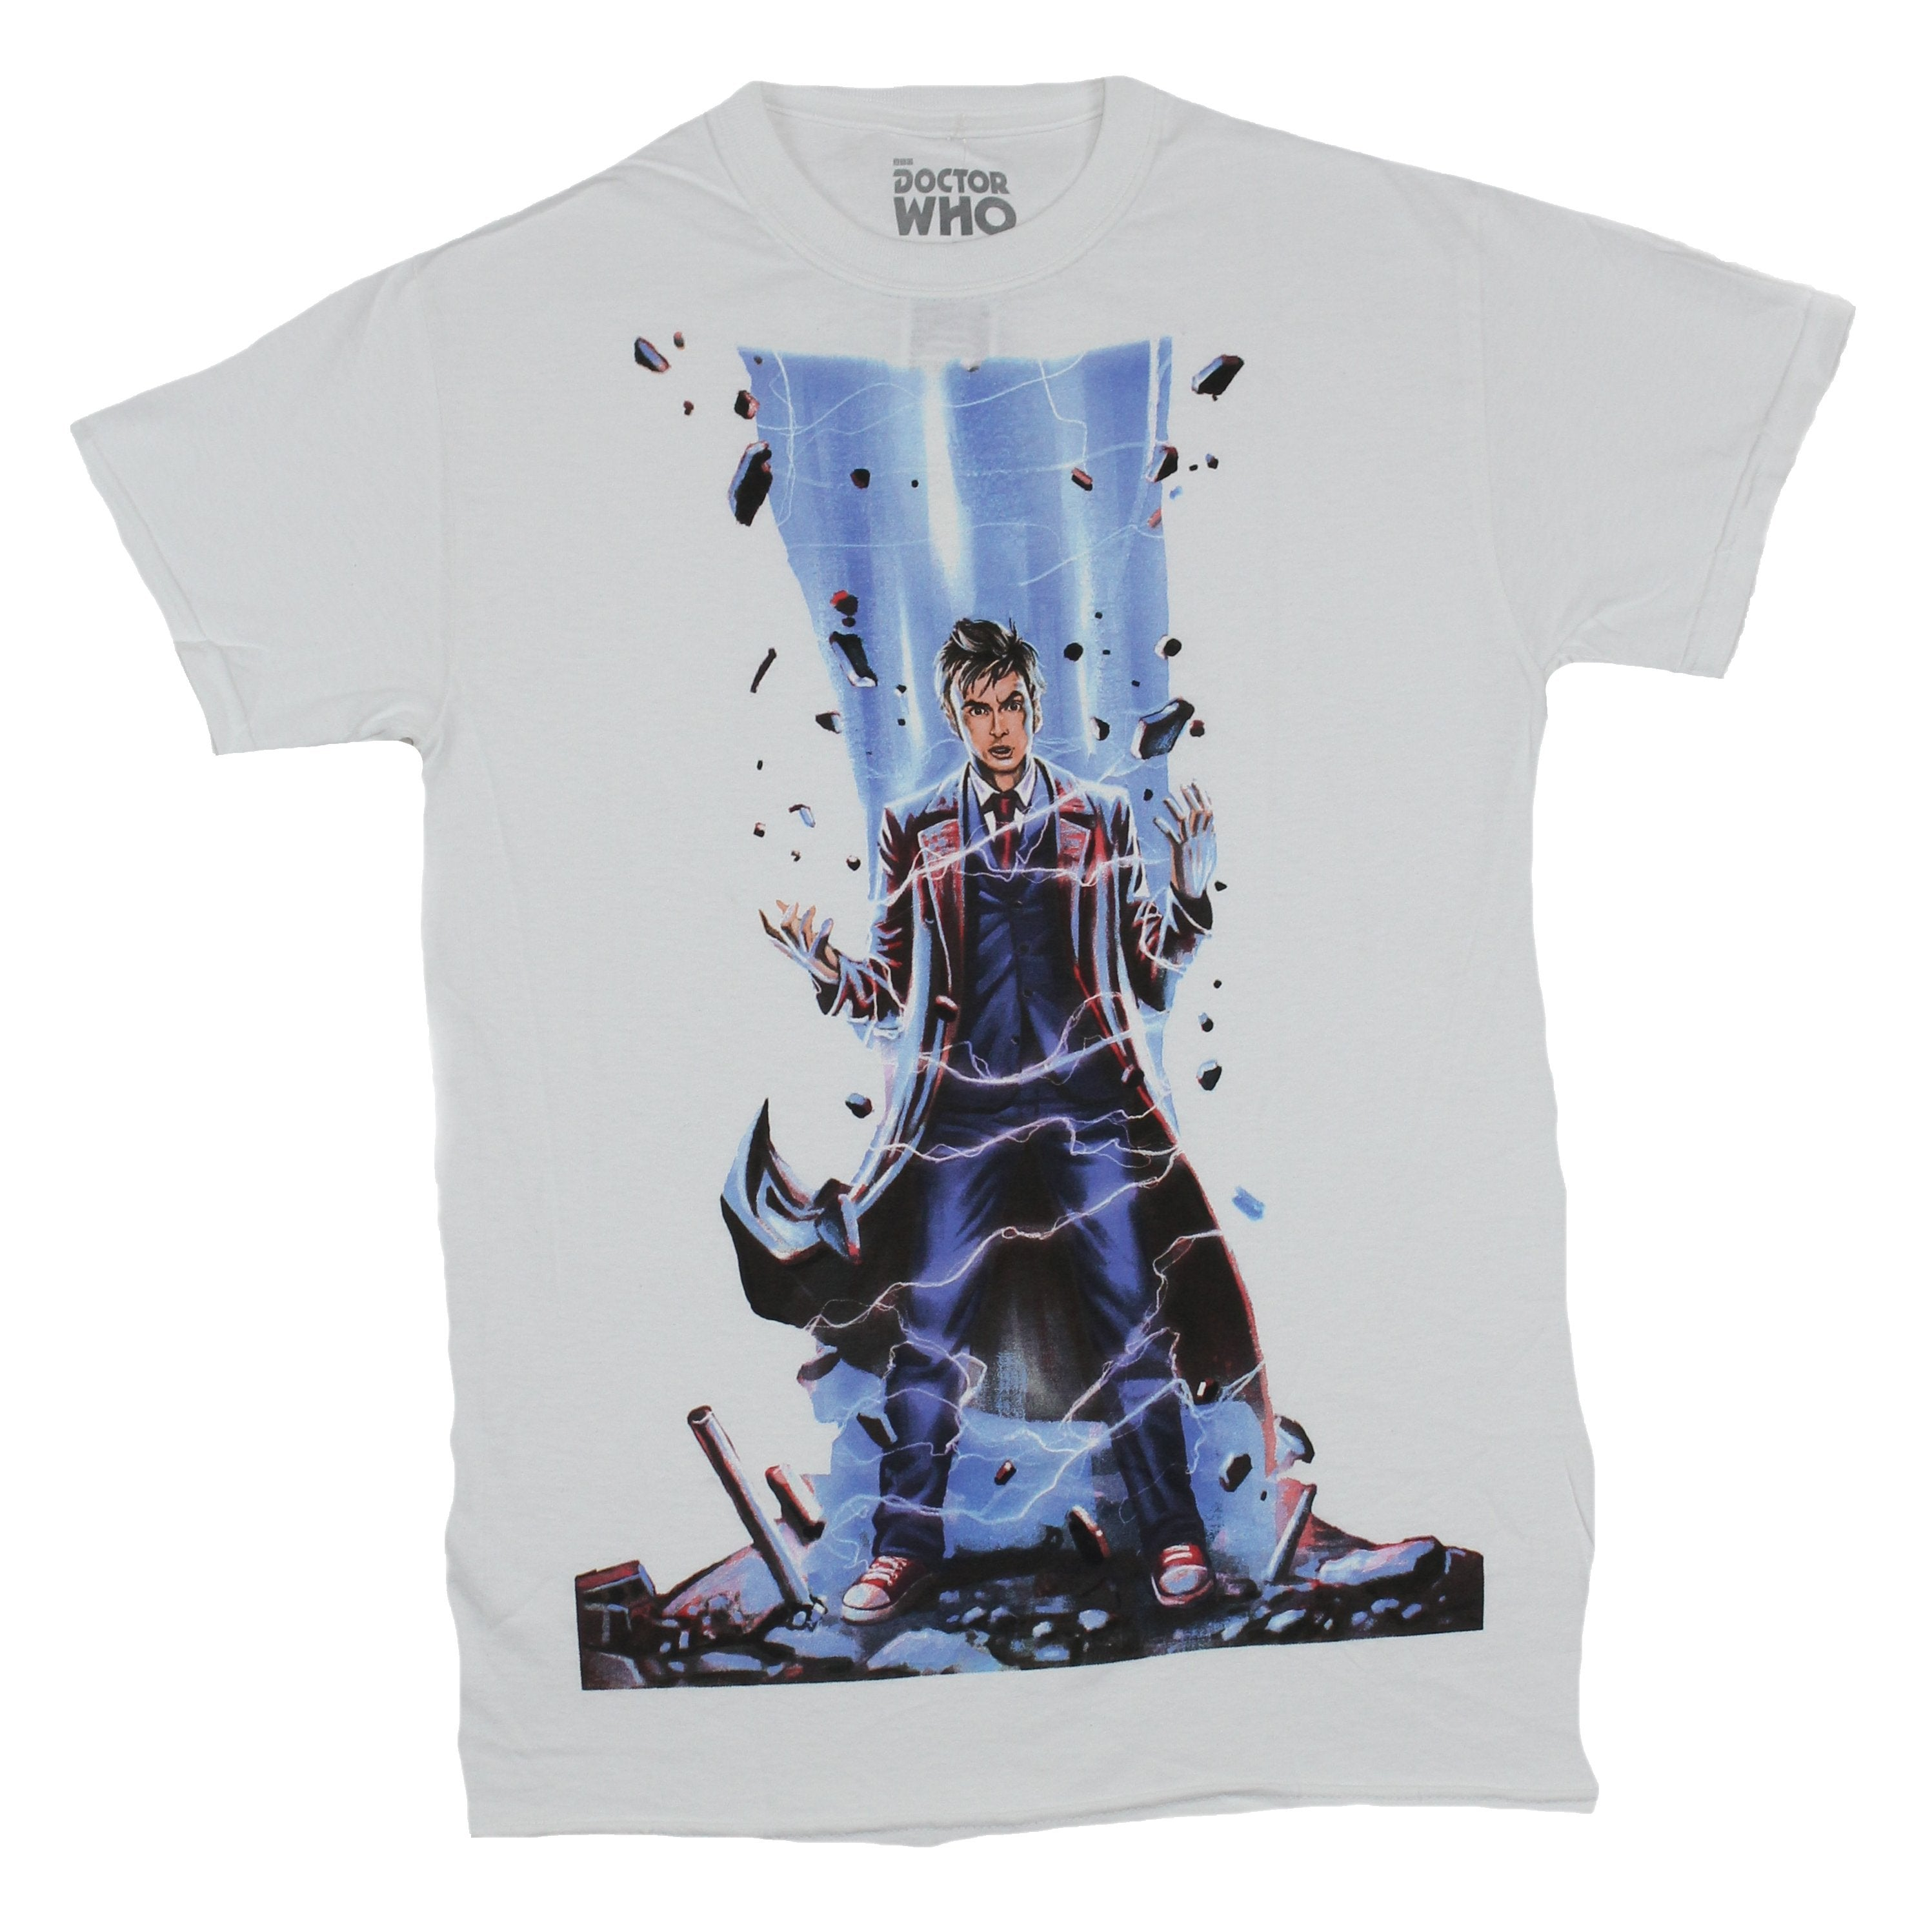 Doctor Who Mens T-Shirt - Electrified Painting of the 12th Doctor Image